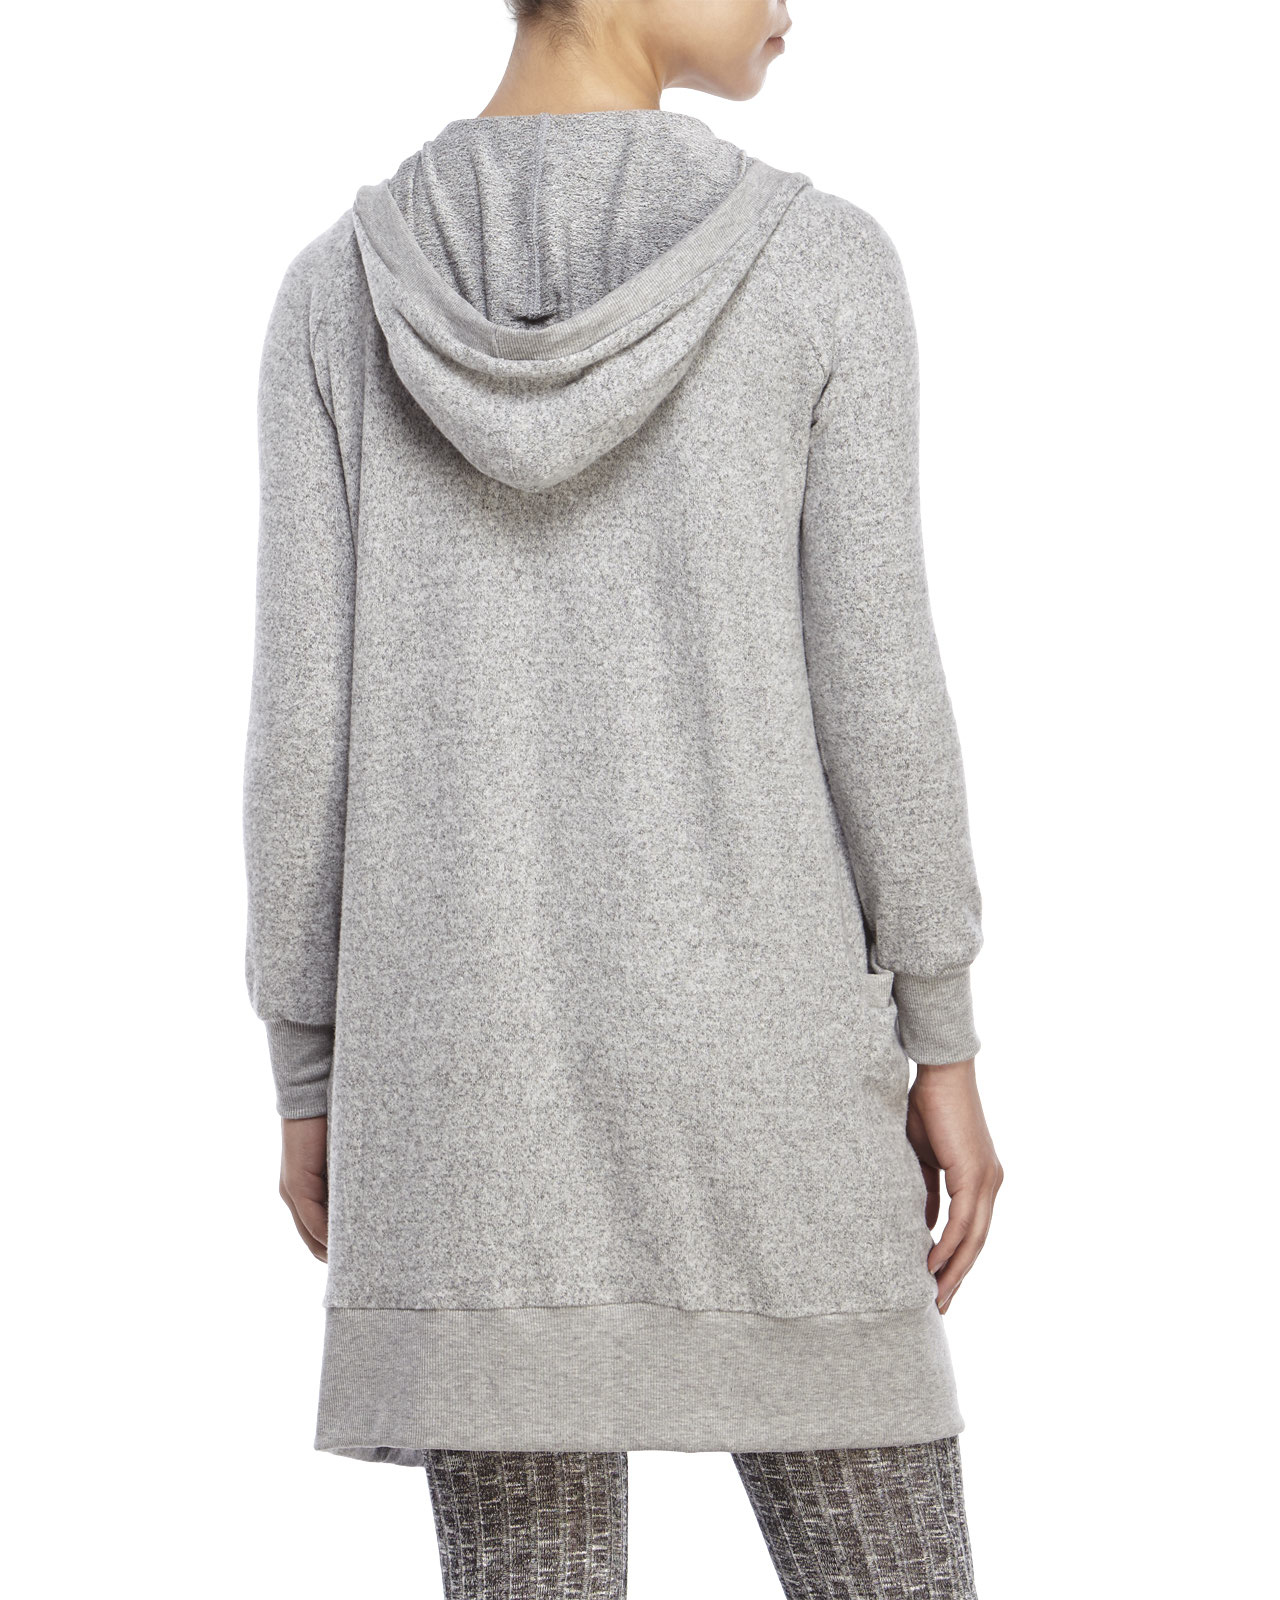 Ppla Hooded Cardigan in Gray | Lyst